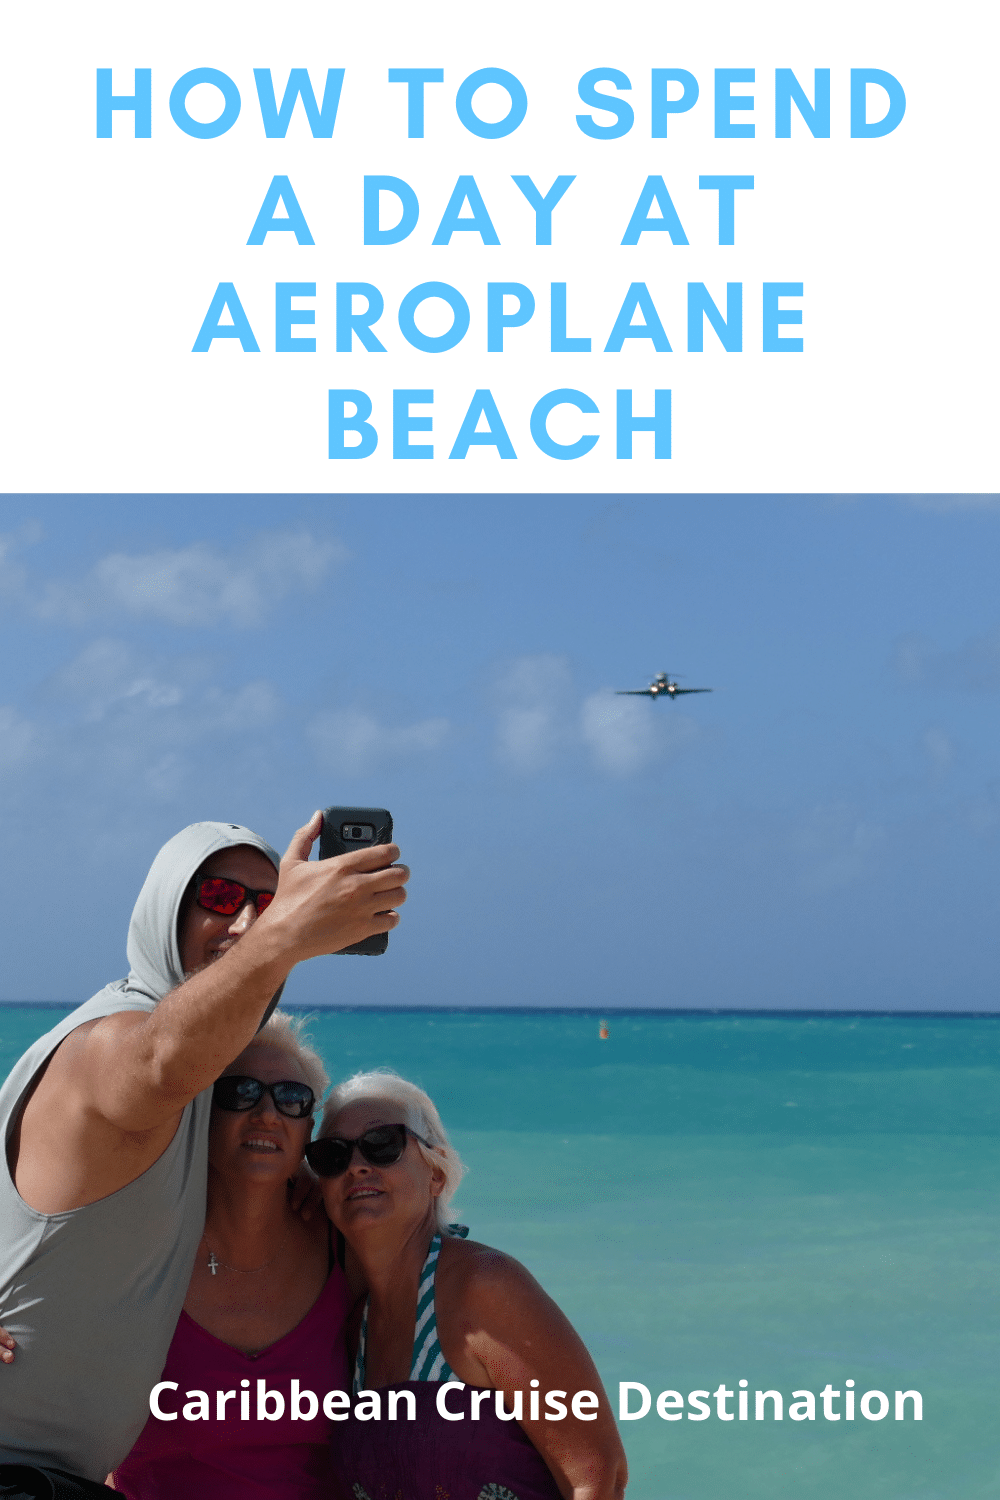 Maho Beach in St Maarten is a fun place to watch the aeroplanes take off and land right above your head! Here are top tips for visiting.